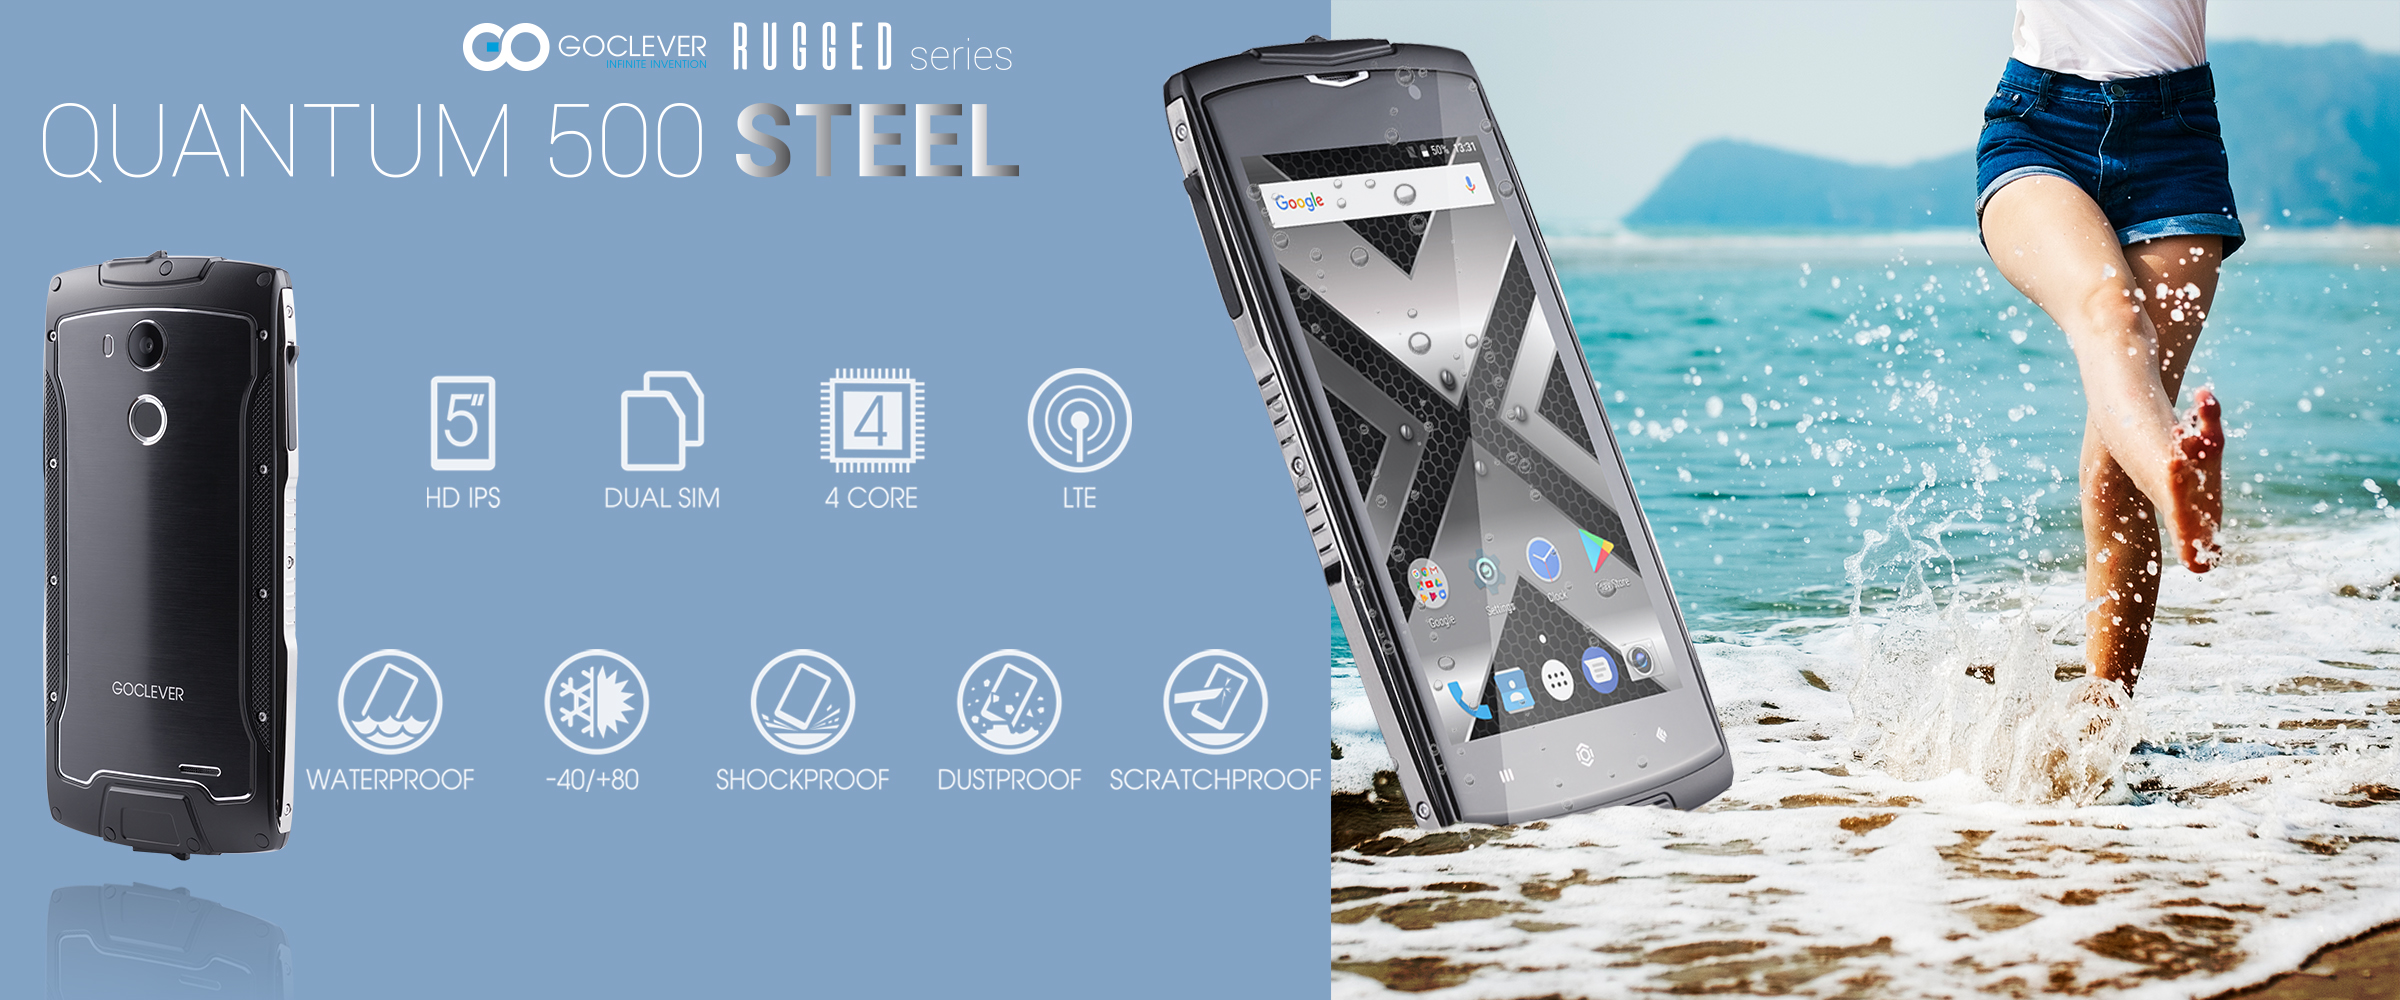 GOCLEVER Quantum 500 Steel, a durable phone for a reasonable price